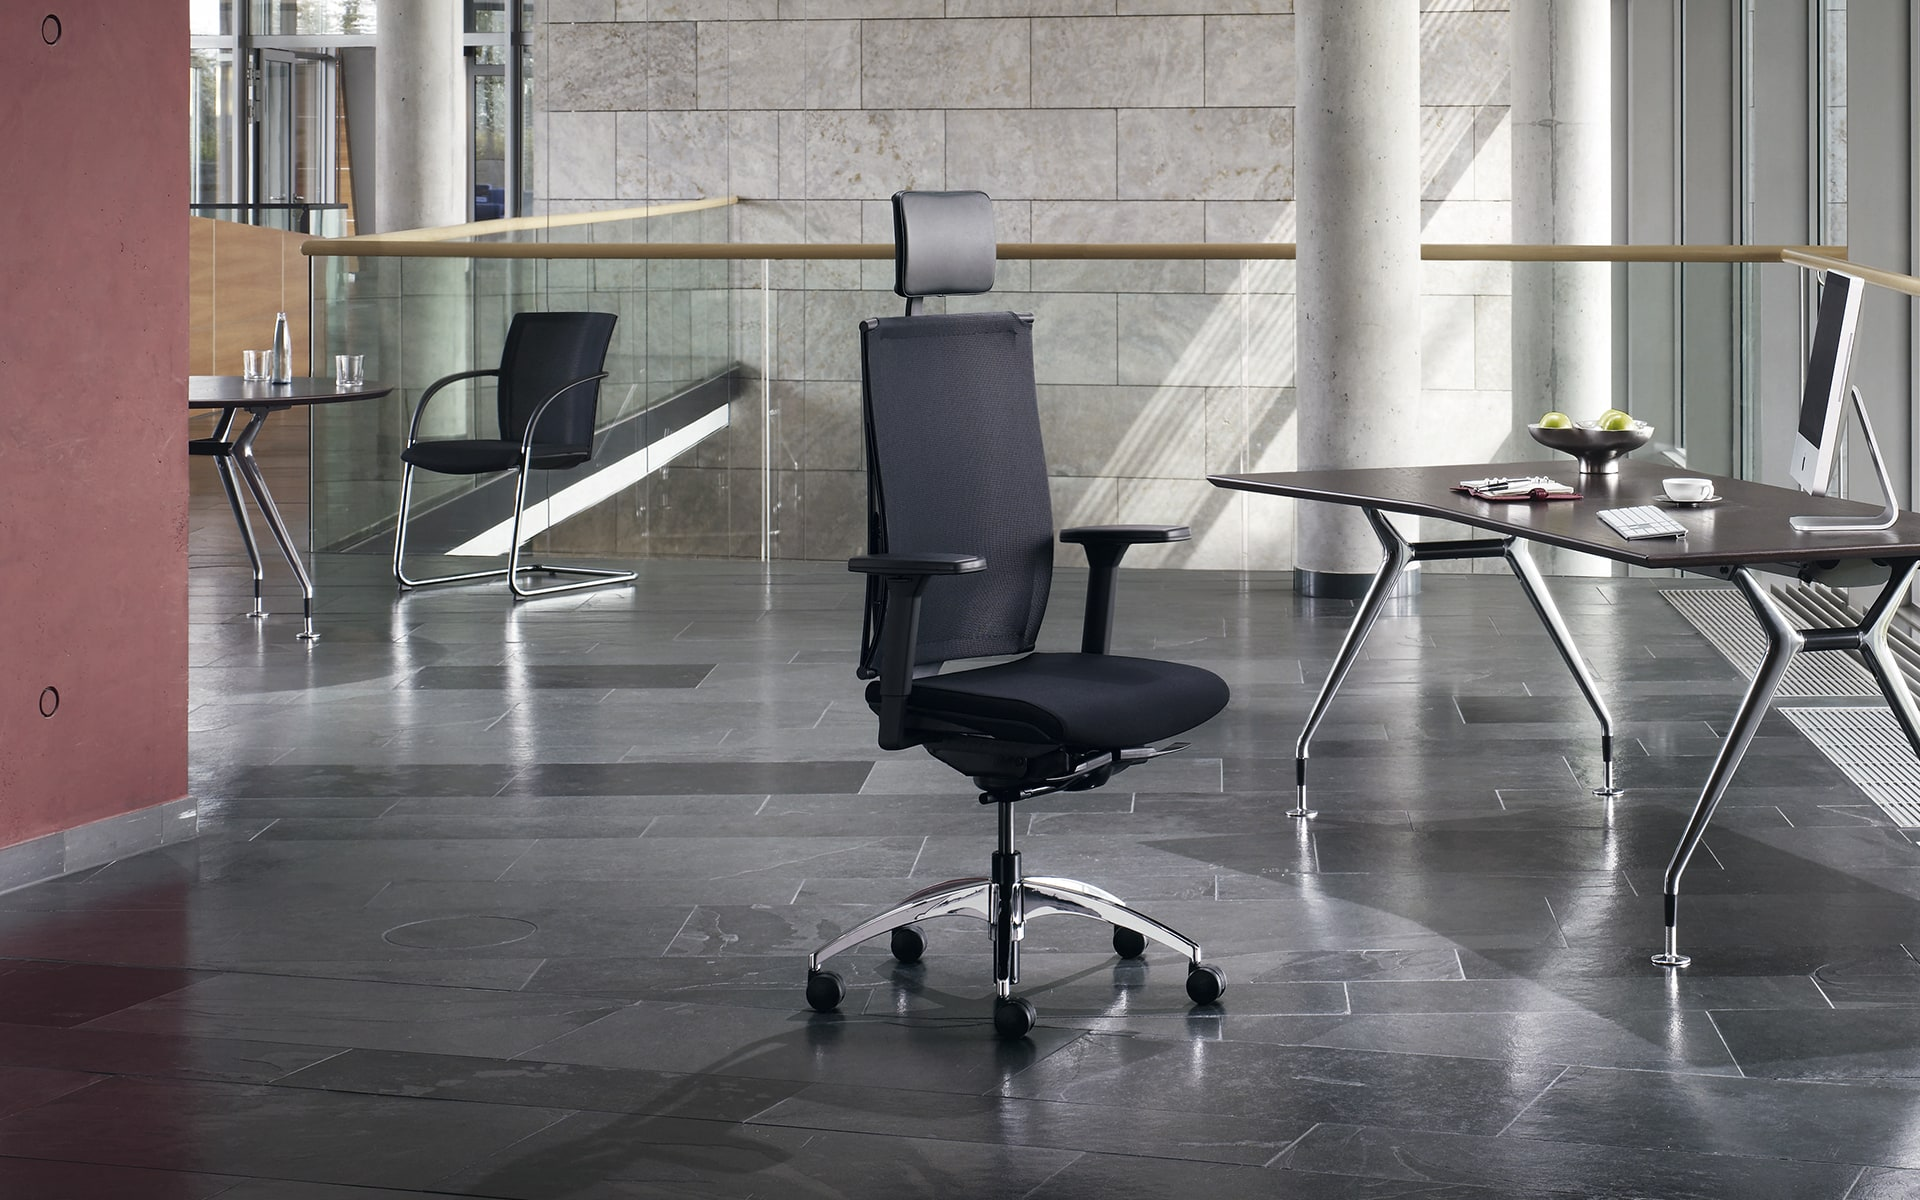 Black K+N Okay office chair by ITO Design in elegant office with dark marble tiles